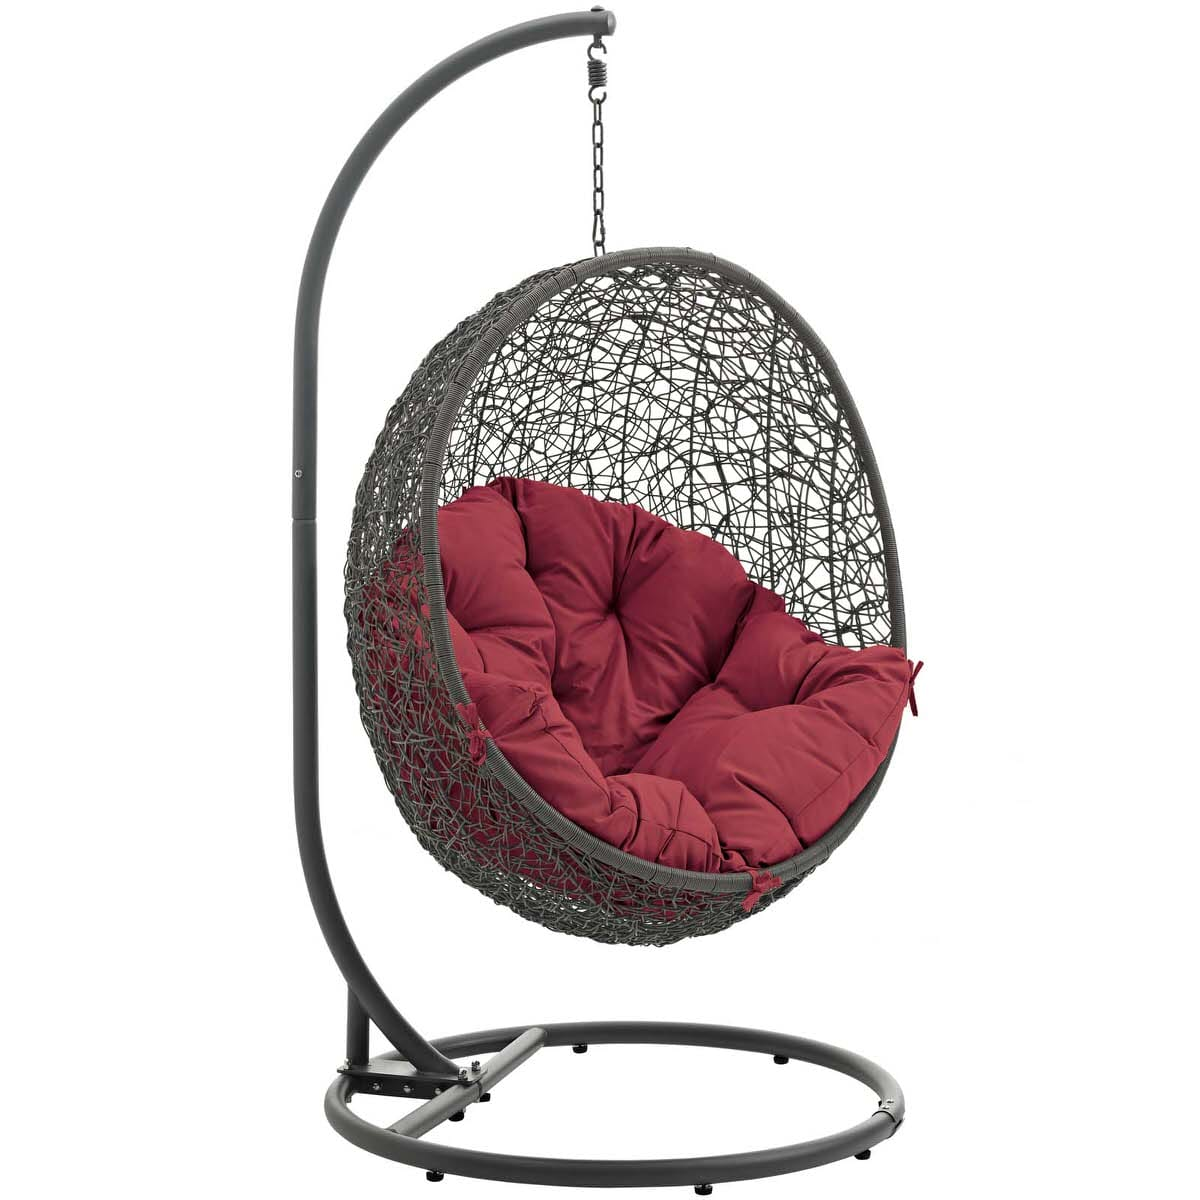 Hide Outdoor Patio Swing Chair With Stand Gray Red By Modern Living (Modern  Living)